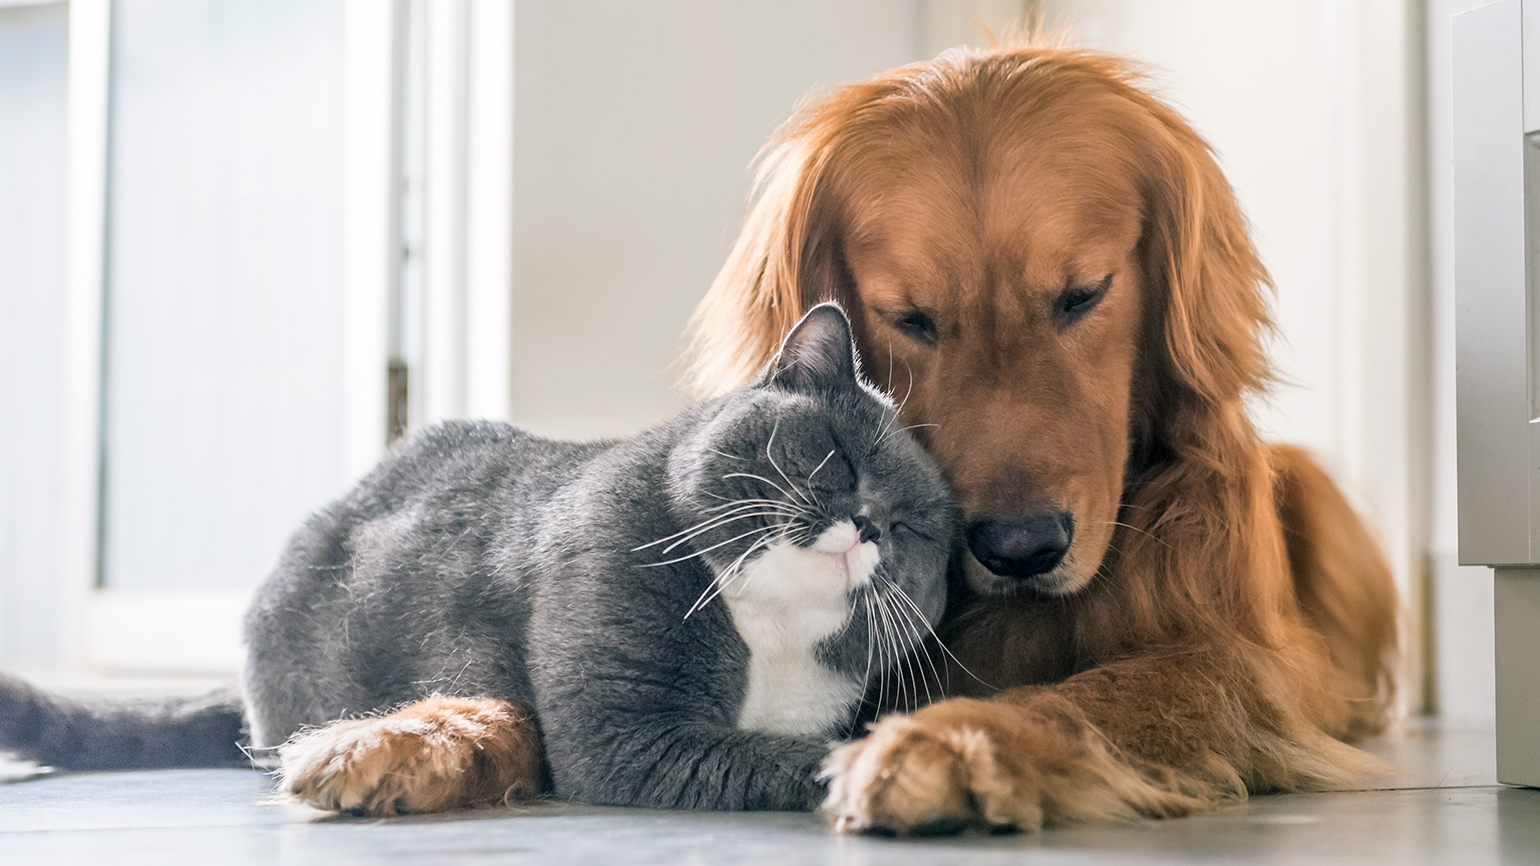 A dog and a cat show affection to each other